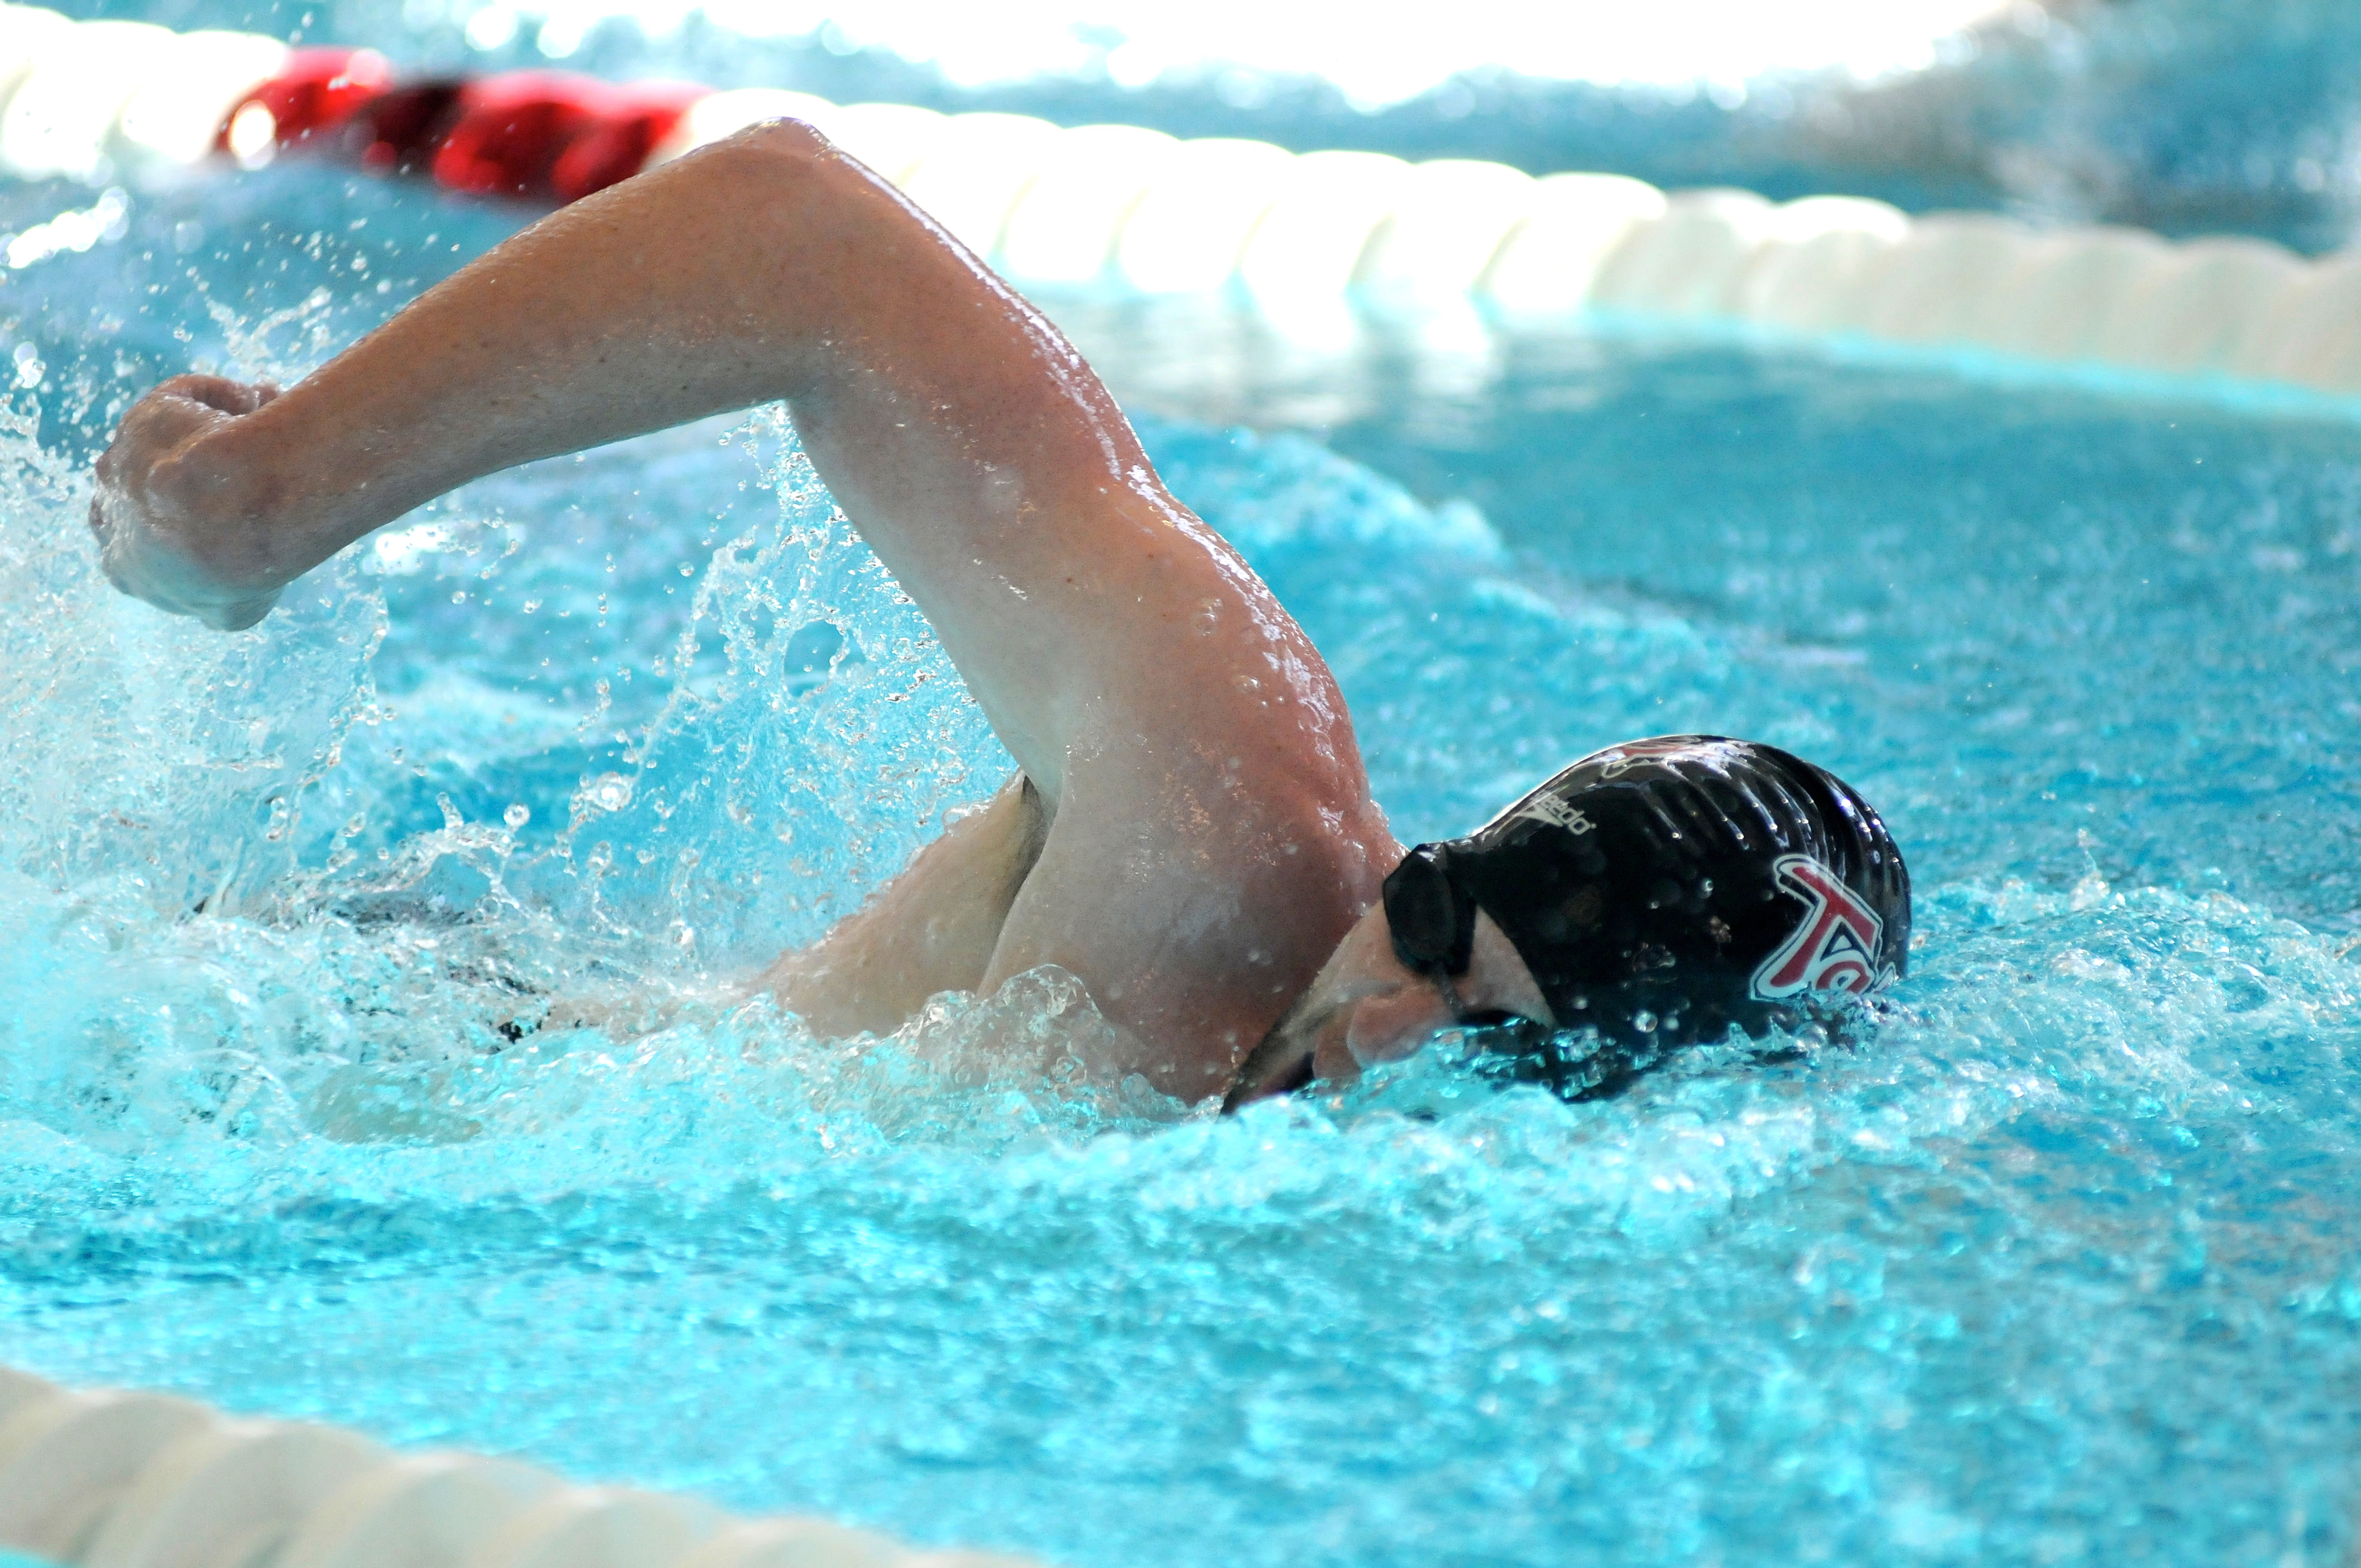 Senior Justin Whaley swims for the Tartans during the meet last Saturday. Carnegie Mellon beat Grove City College, and the men's team won both the 1,000-yard freestyle and the 100-yard butterfly events. (credit: Isaac Jones/Comics Editor )